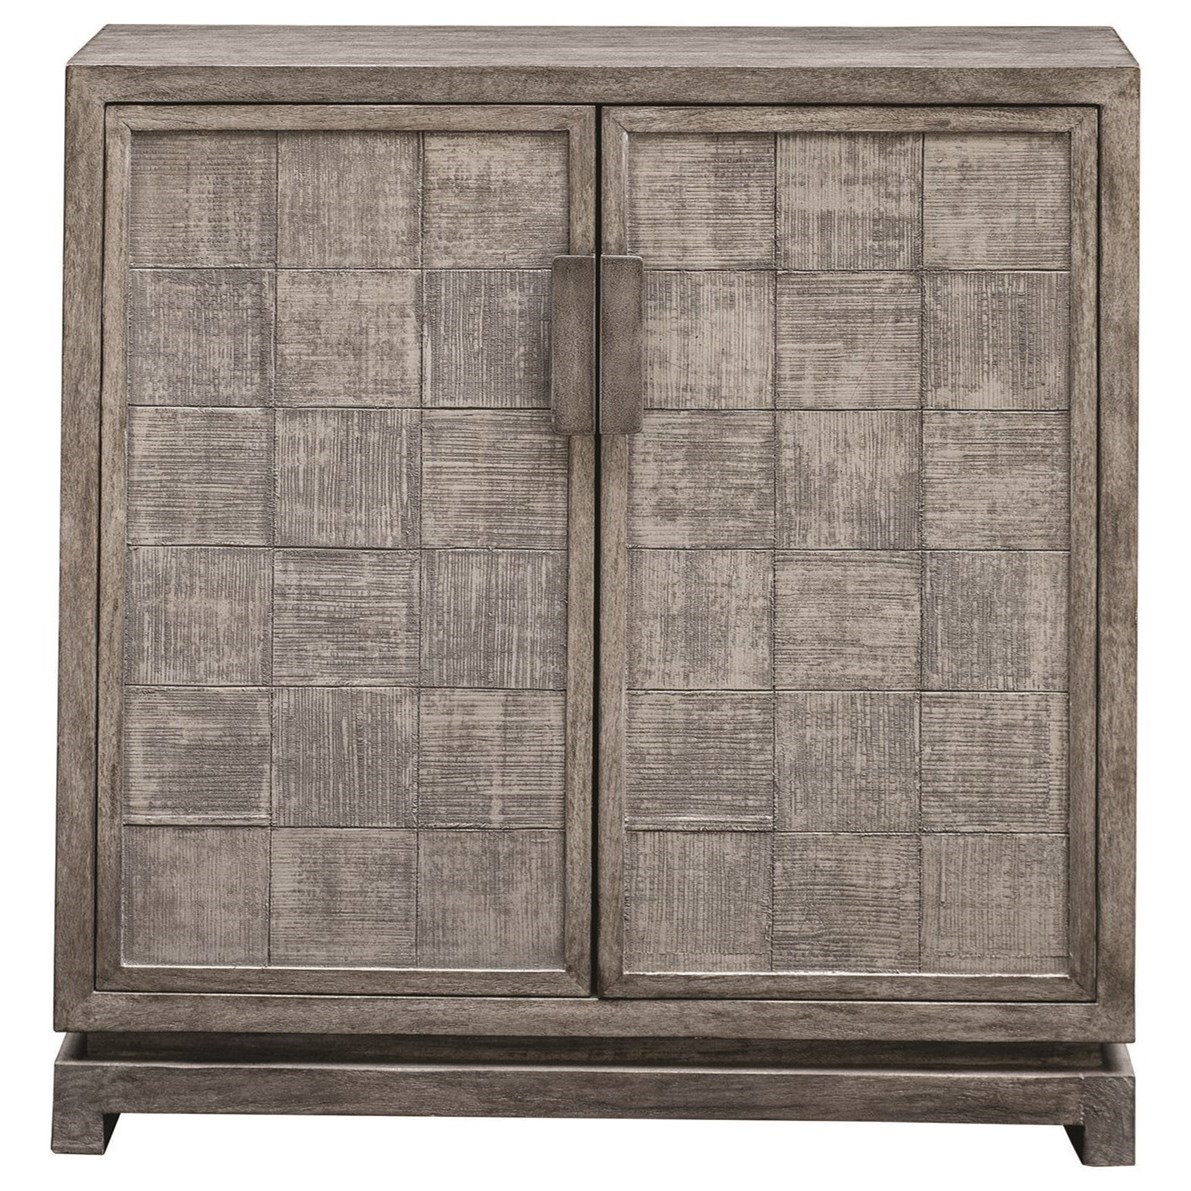 Accent Furniture - Chests Hamadi Distressed Gray 2-Door Cabinet by Uttermost at Factory Direct Furniture